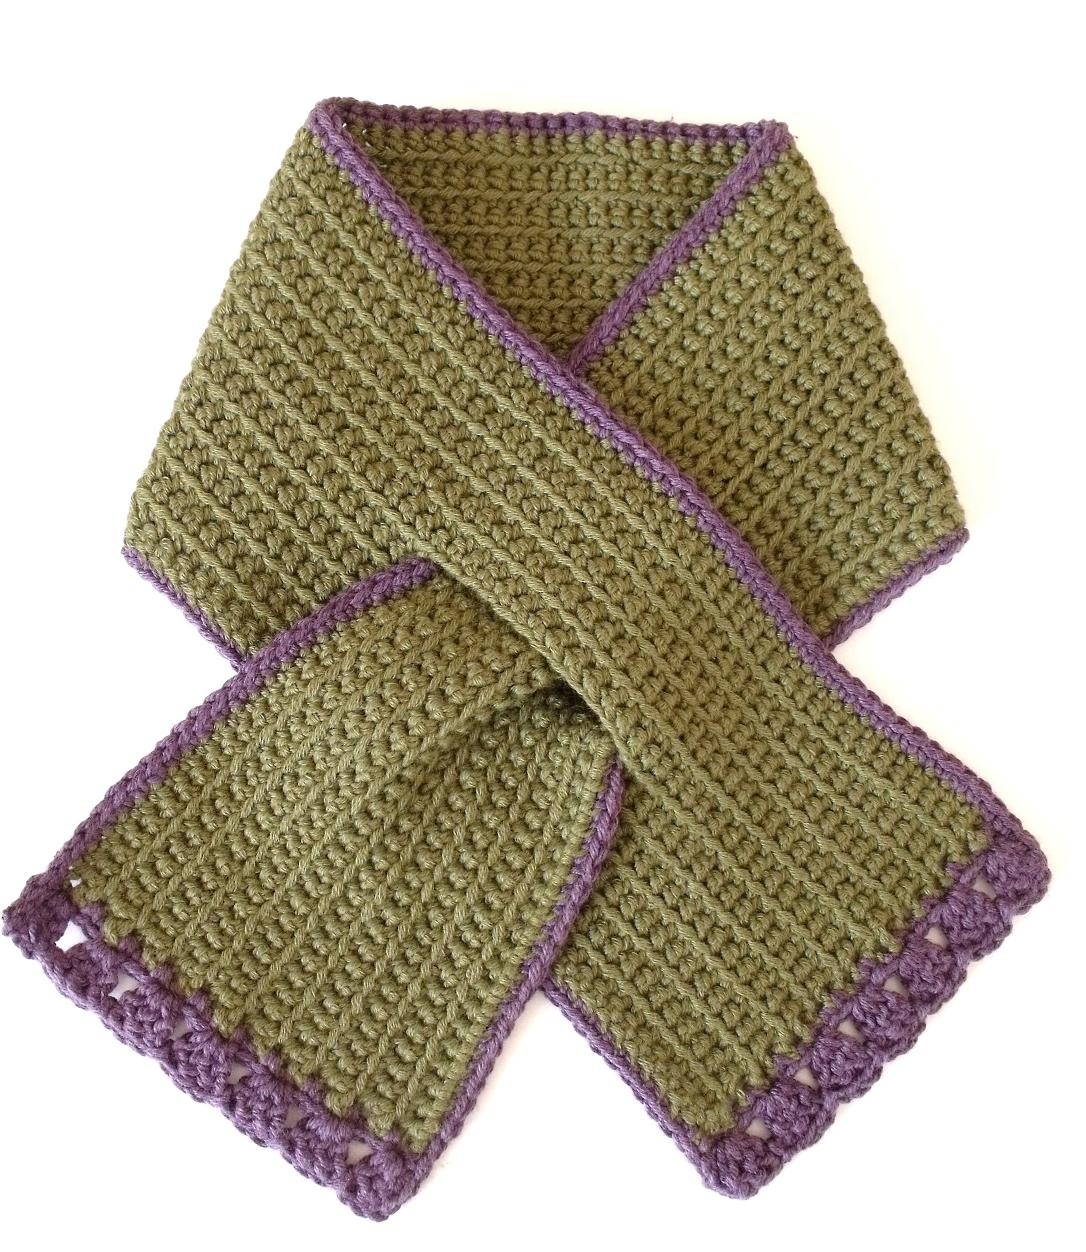 Free Crochet Patterns Keyhole Scarf : KEYHOLE CROCHET FREE PATTERN SCARF ? CROCHET PATTERNS